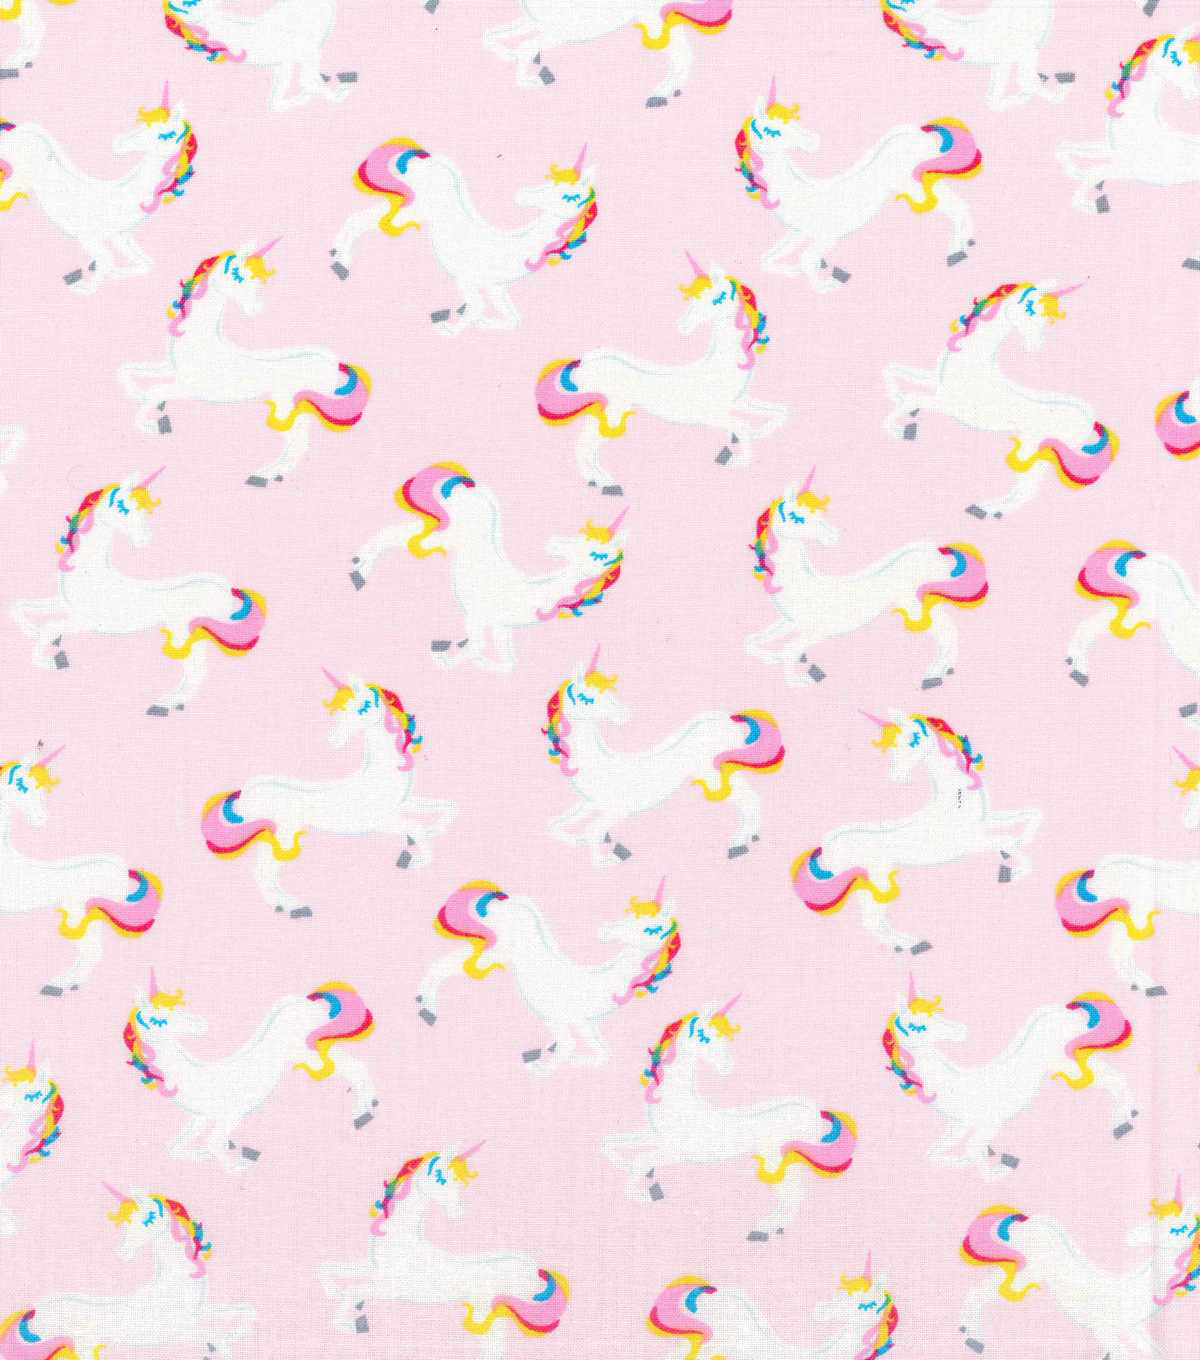 Cute Wallpaper Patterns Novelty Cotton Fabric 43 Quot Unicorn Pink Joann